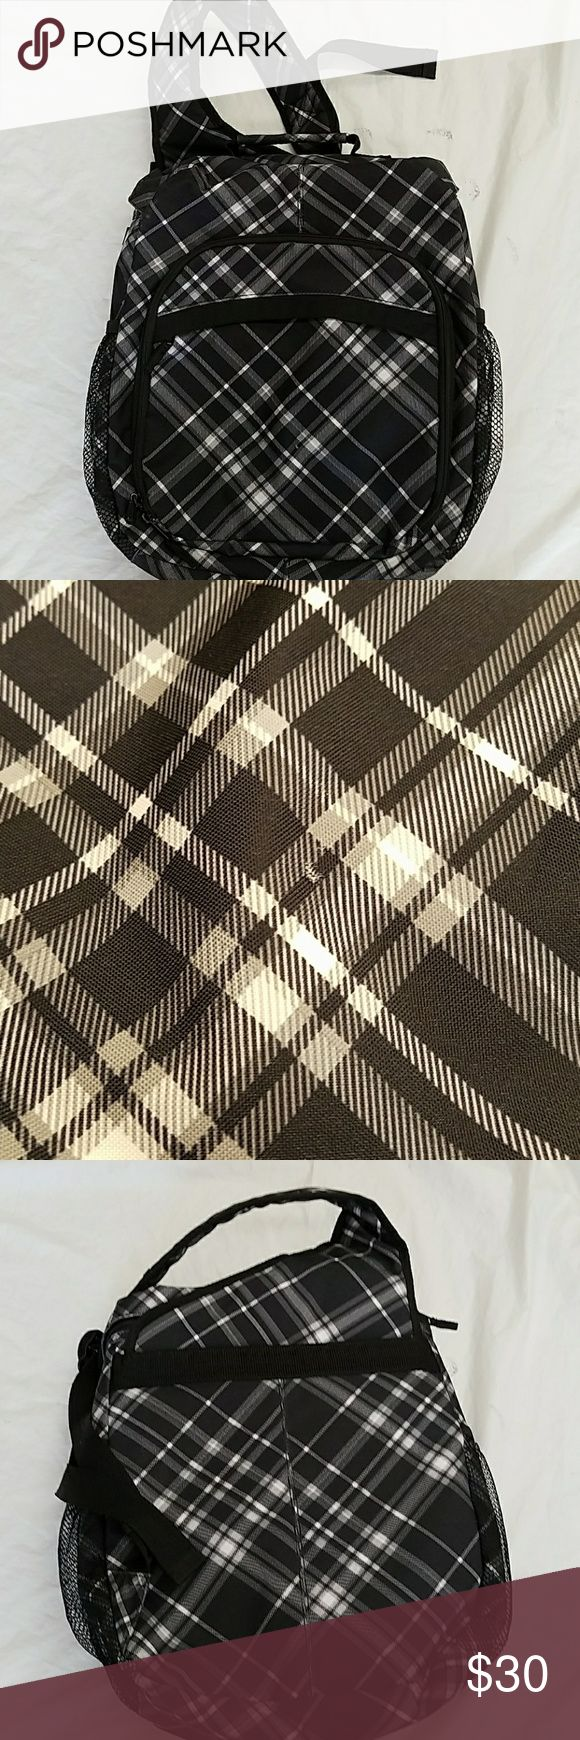 Thirty-one black grey plaid swing pack backpack Up for sale is a lightly-used bag that has removable compartments period it measures 13.5 inches wide by 16 inches tall. There is one little teeny superficial Mark in front... very clean thirty -one Bags